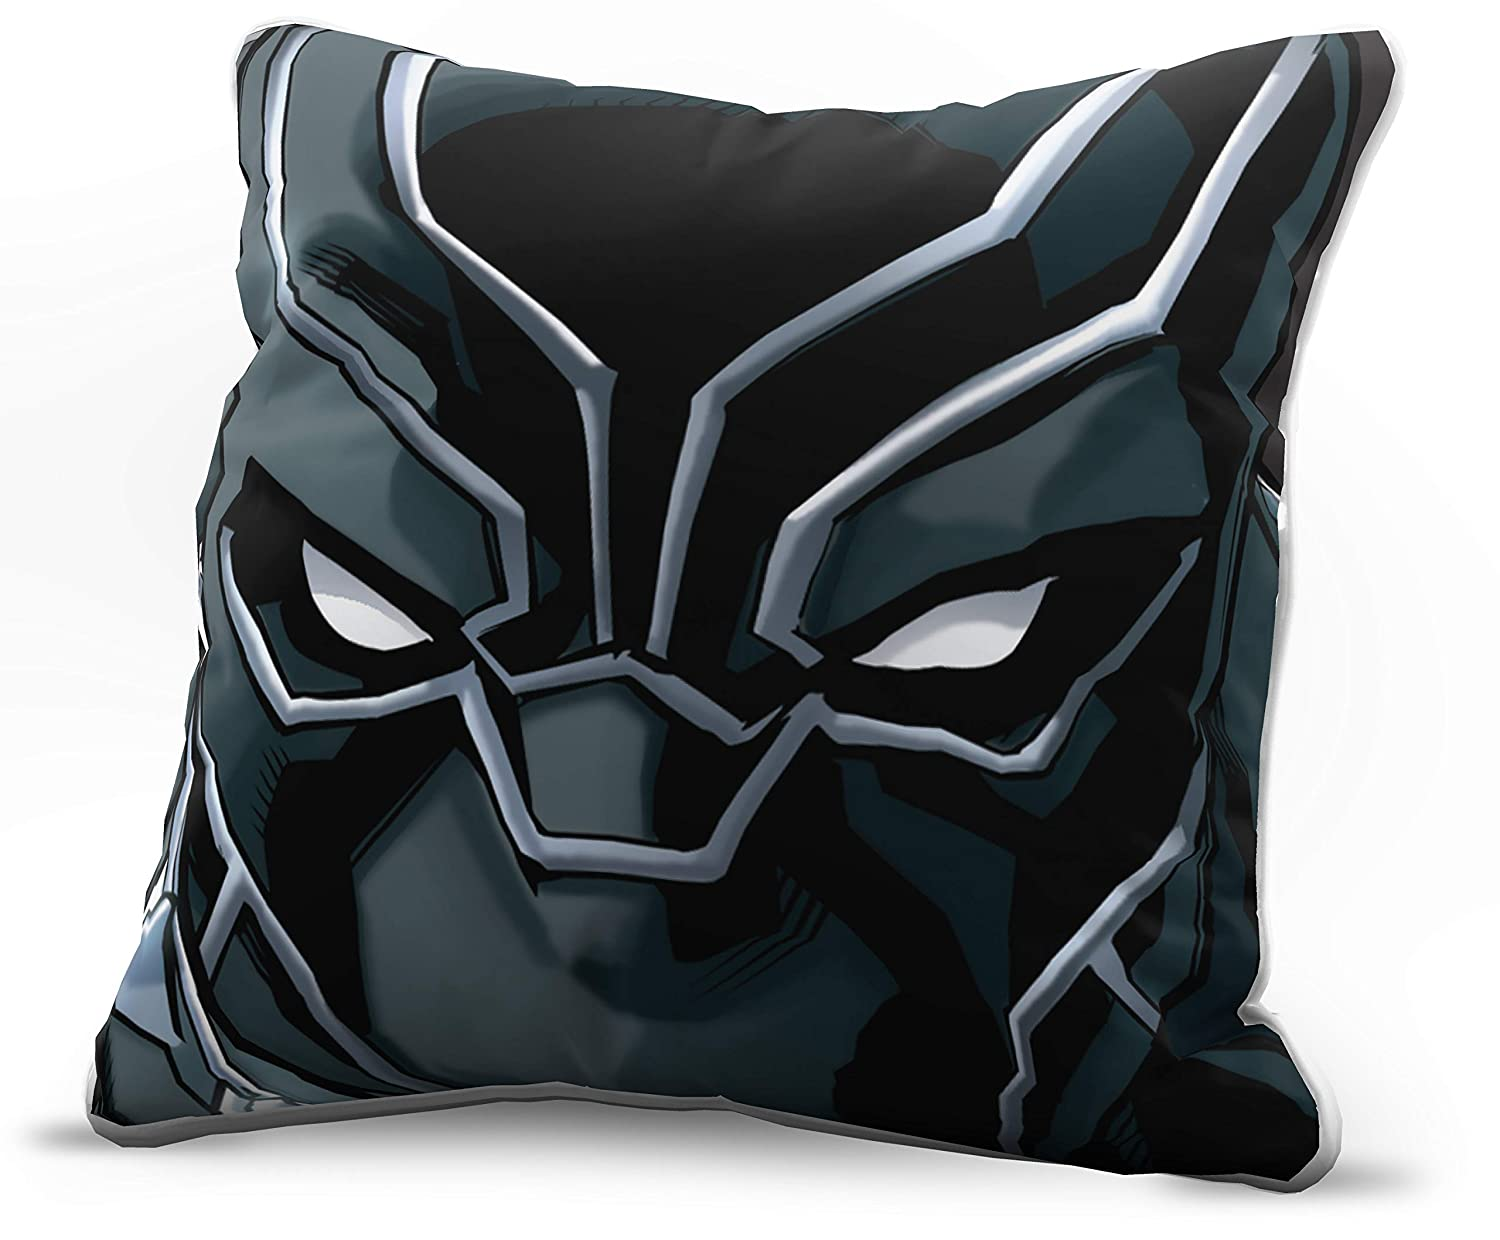 Jay Franco Marvel Avengers Black Panther Face Decorative Pillow Cover - Kids Super Soft 1-Pack Throw Pillow Cover - Measures 15 Inches x 15 Inches (Official Marvel Product)